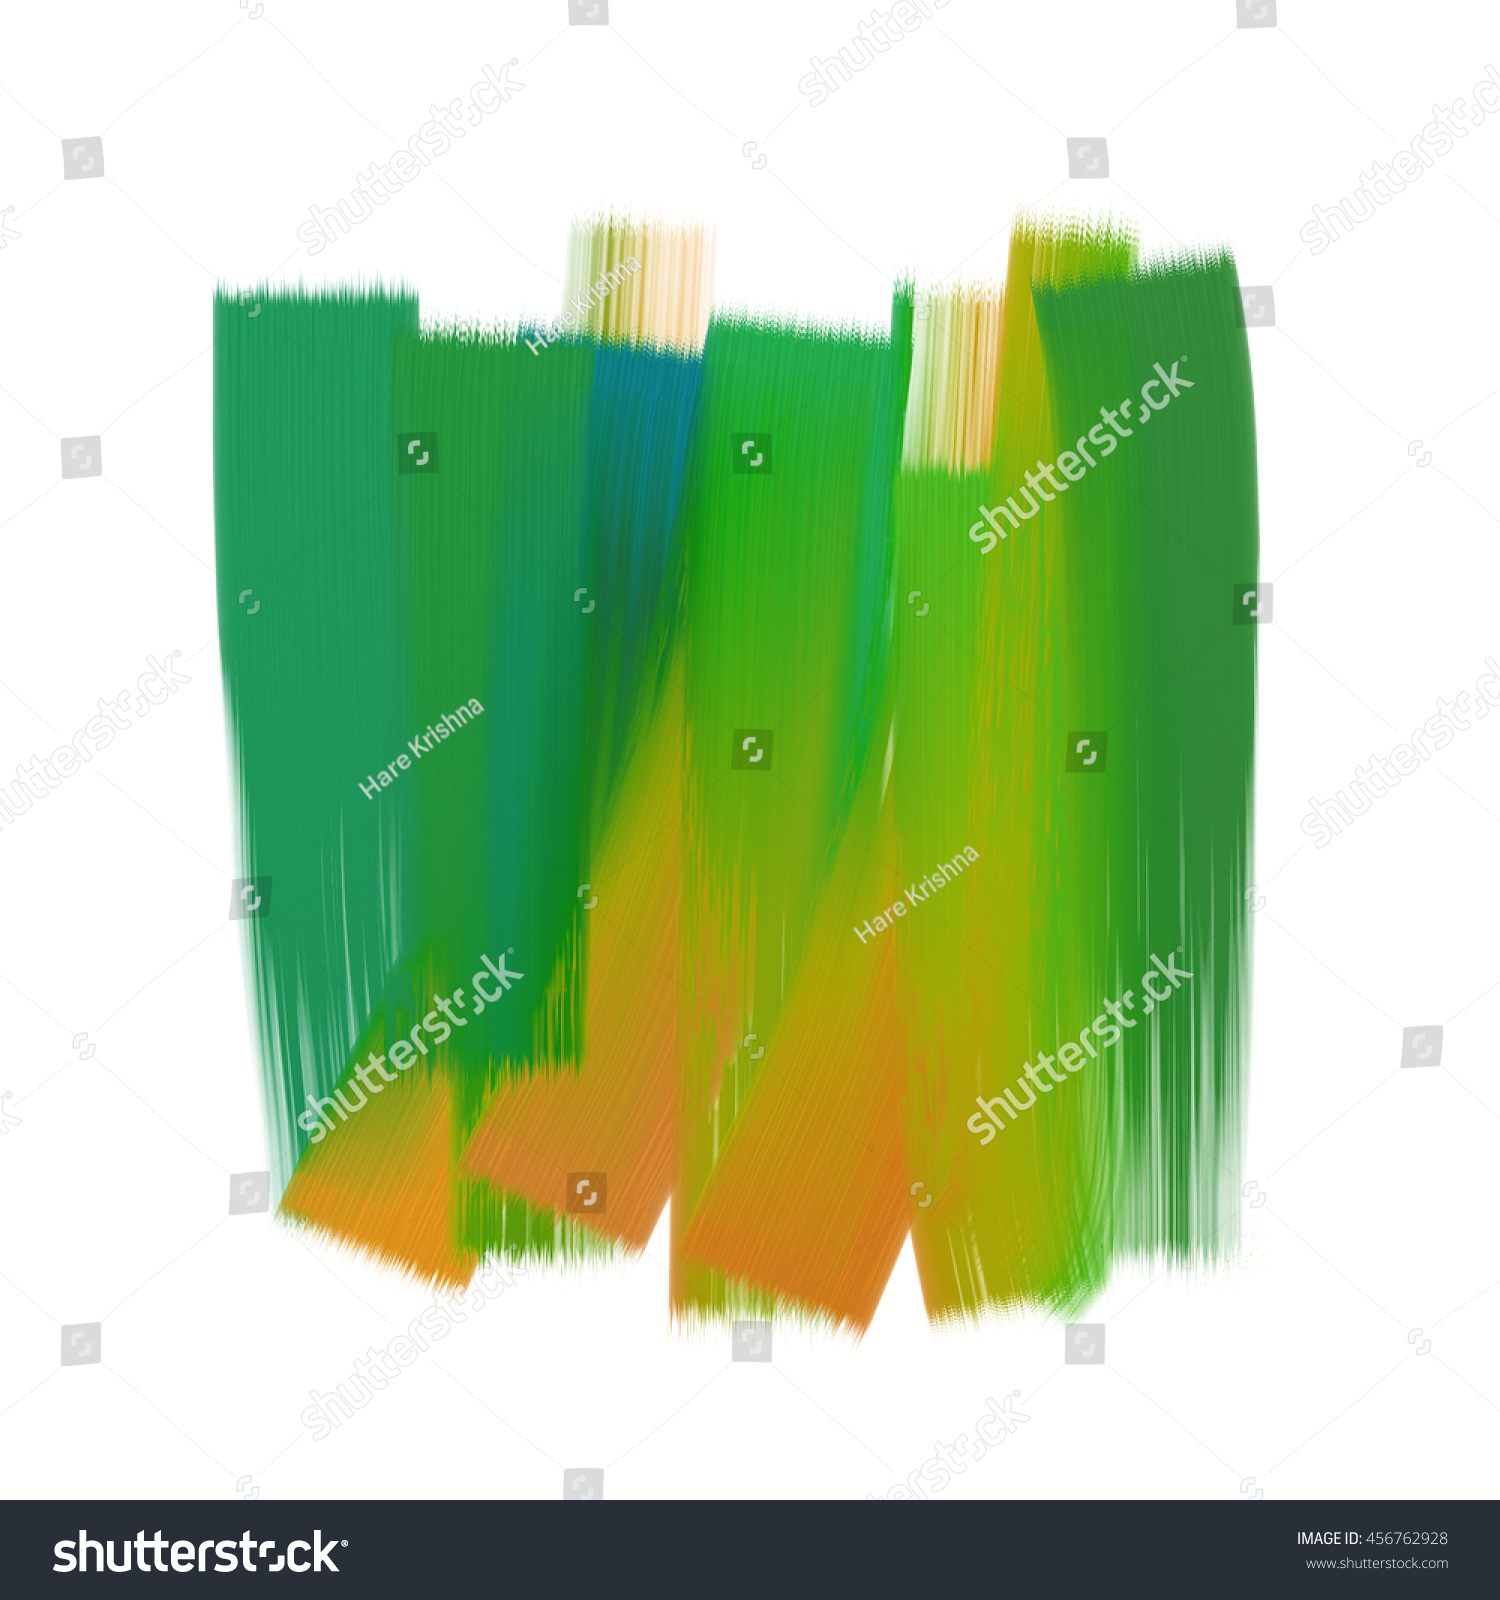 Abstract texture acrylic oil paint on stock illustration for Oil or acrylic